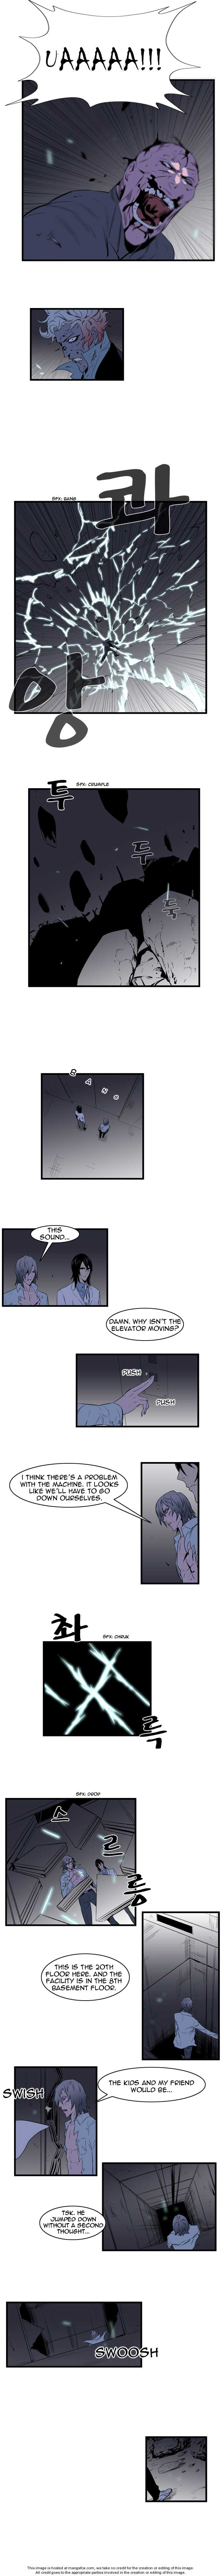 Noblesse 75 Page 3